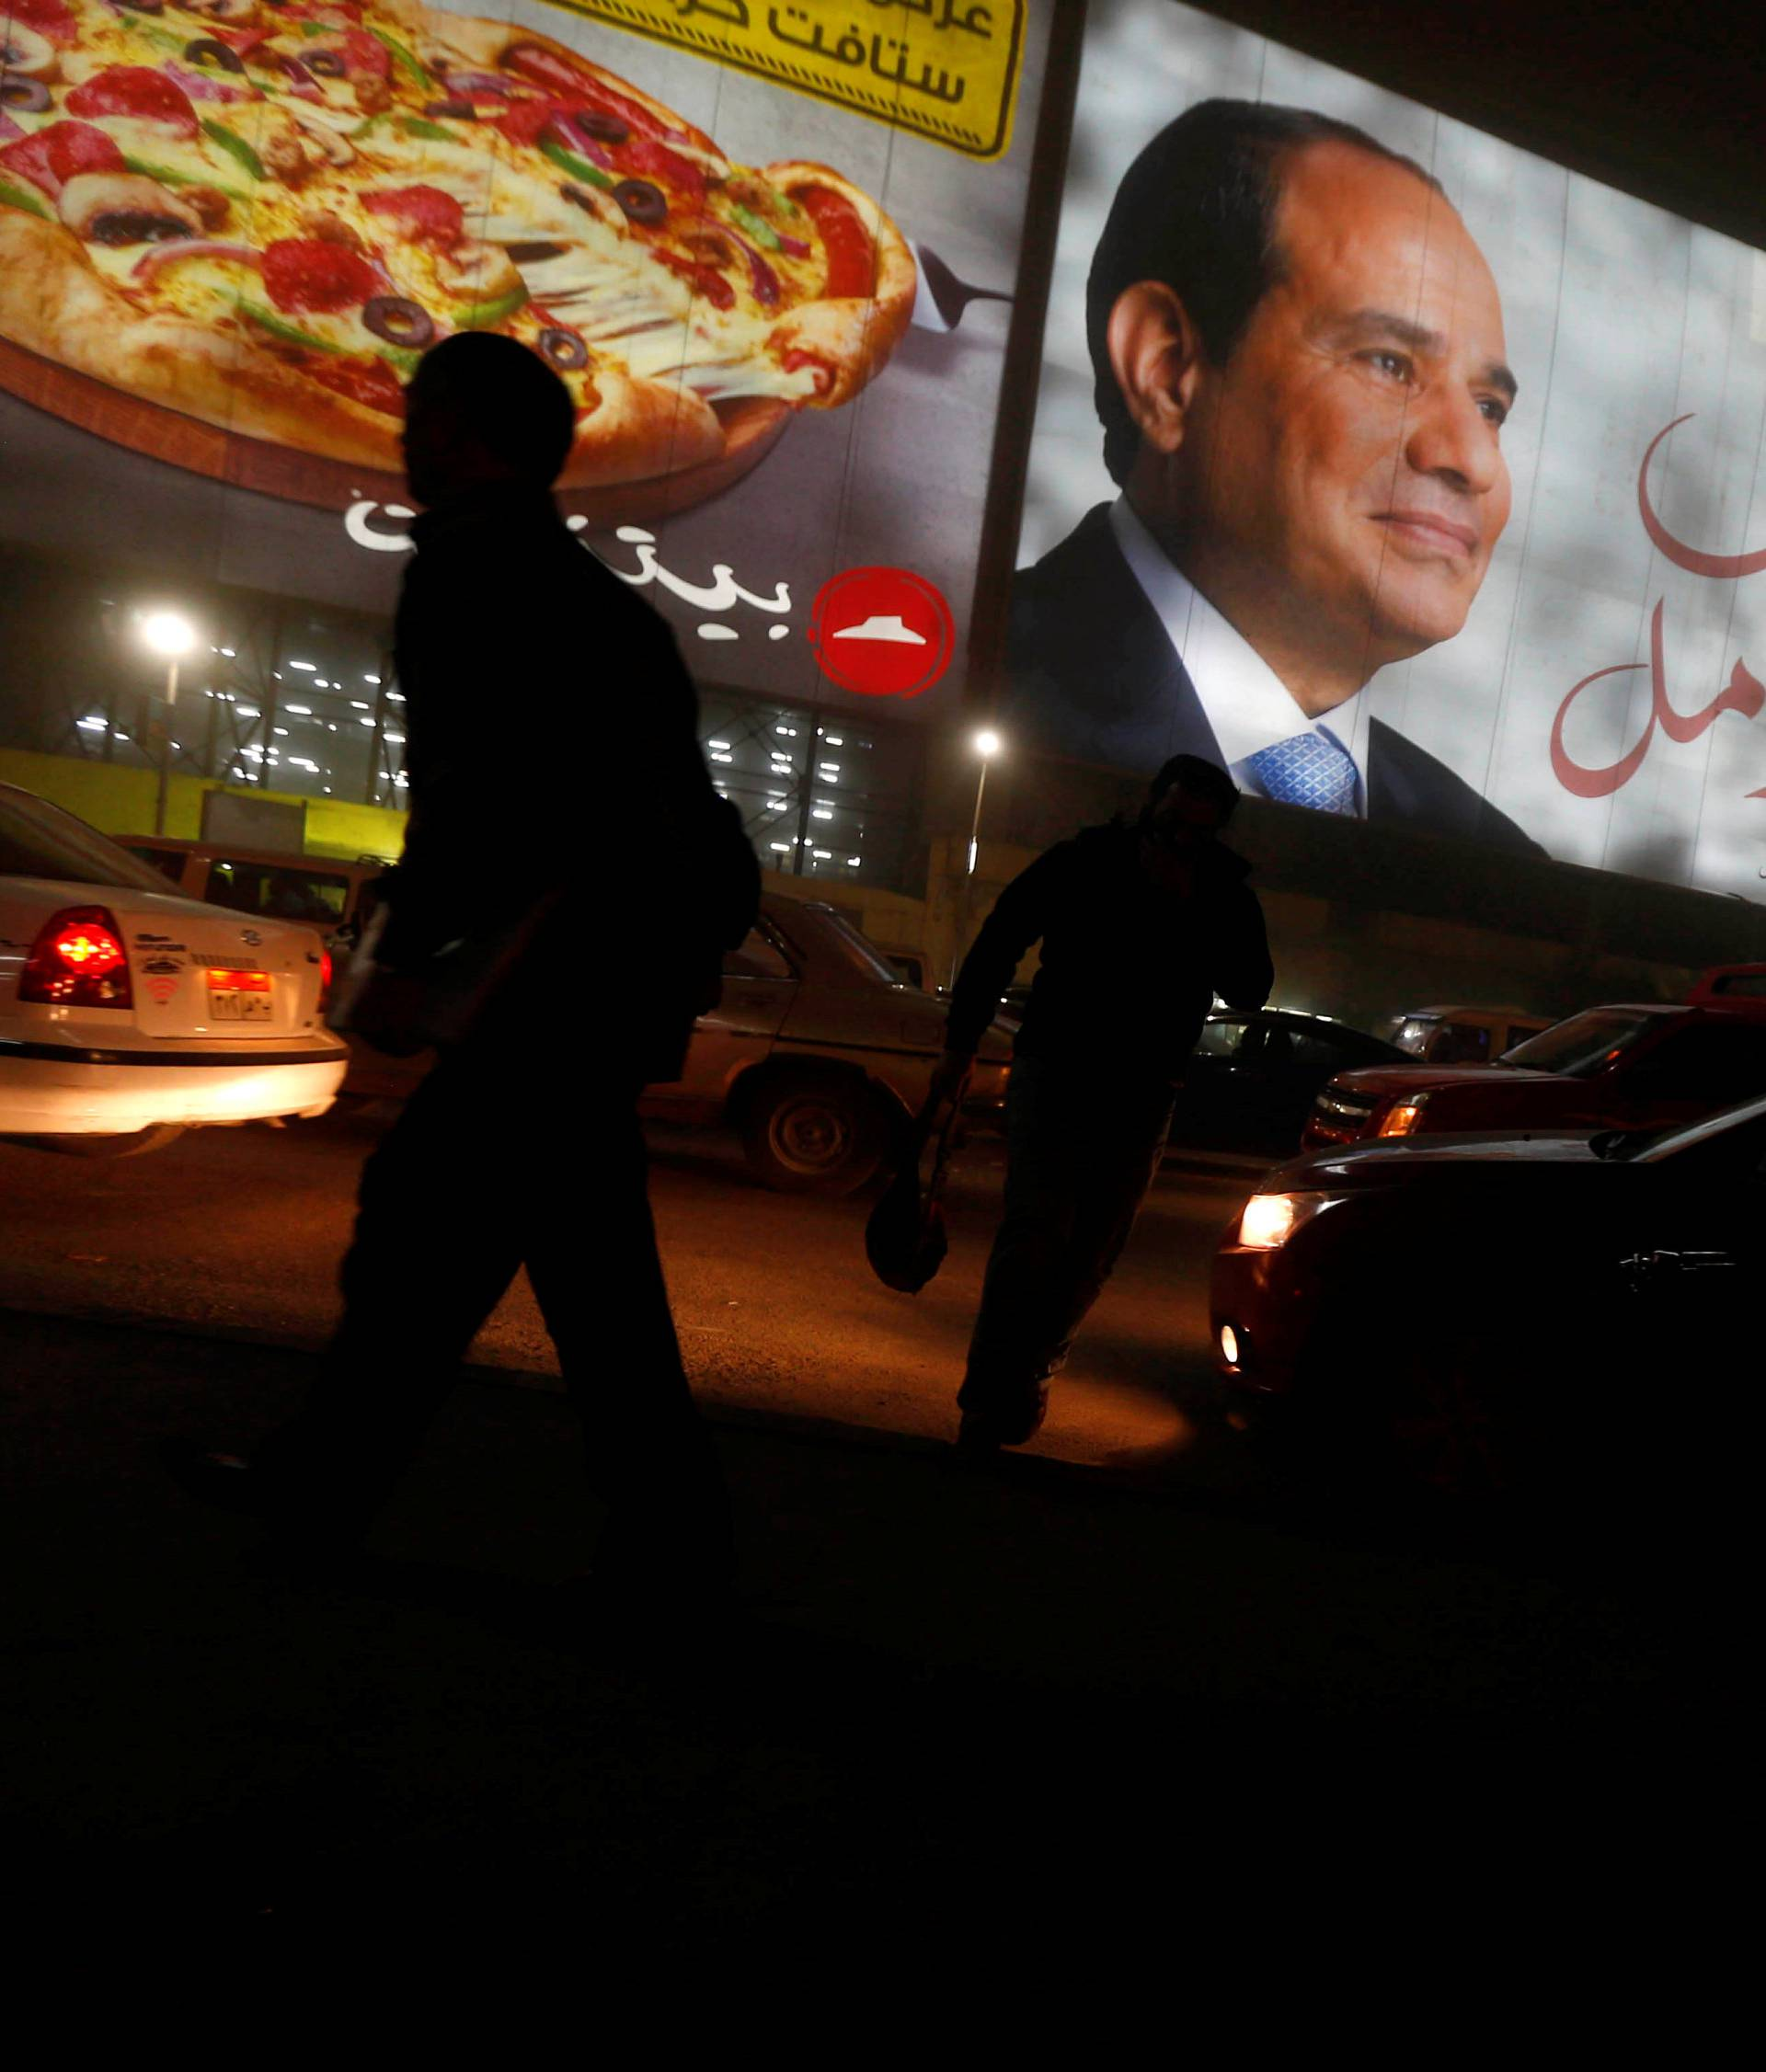 People walk near a billboard showing a picture of Egyptian President Abdel Fattah al-Sisi during the presidential election in Cairo